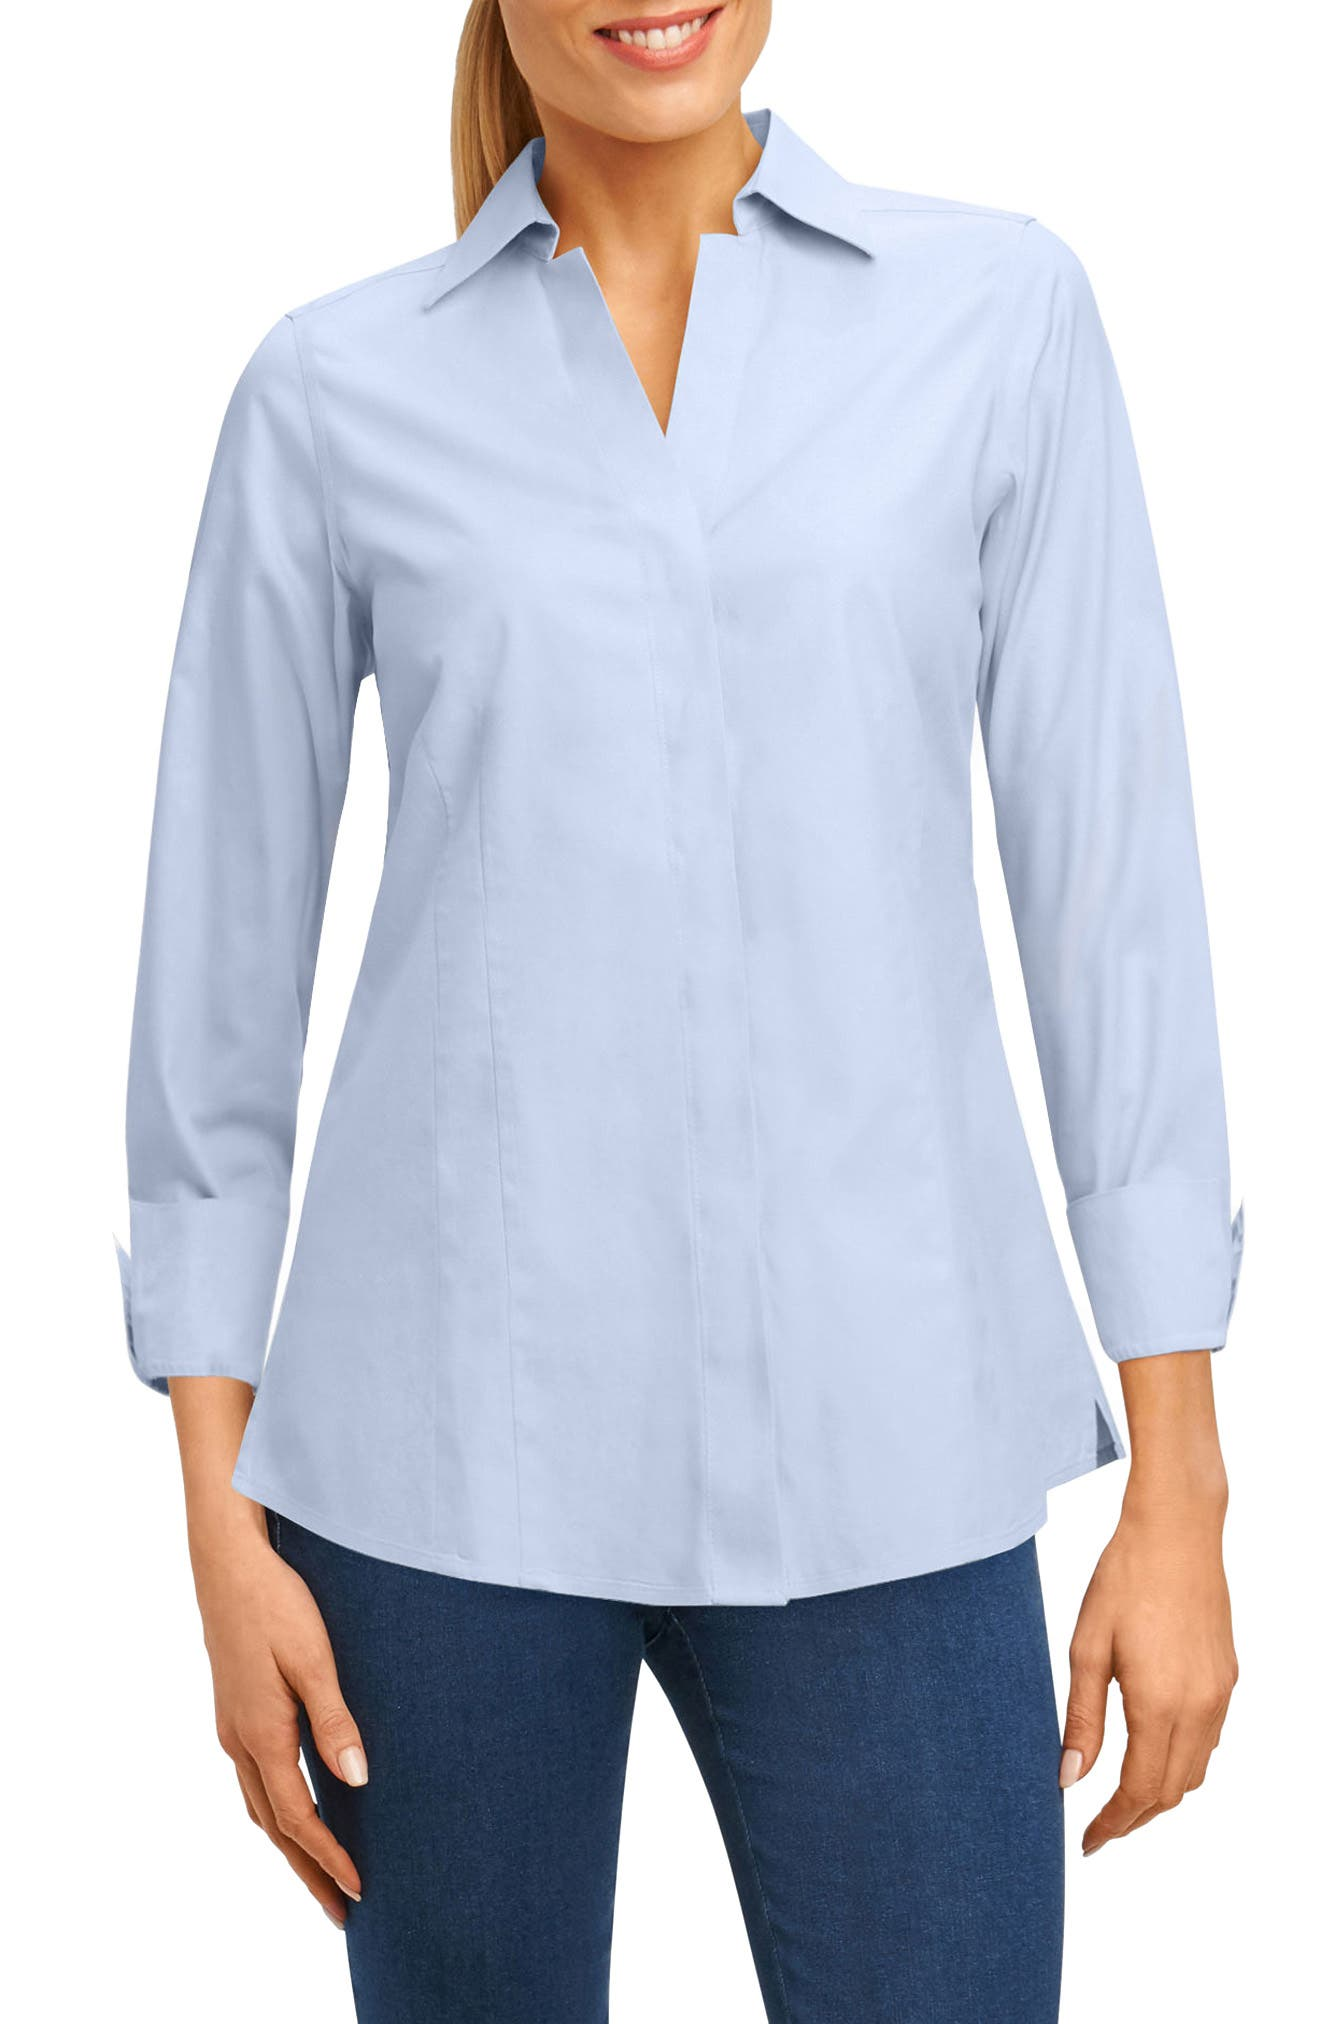 Main Image - Foxcroft Fitted Non-Iron Shirt (Regular & Petite)